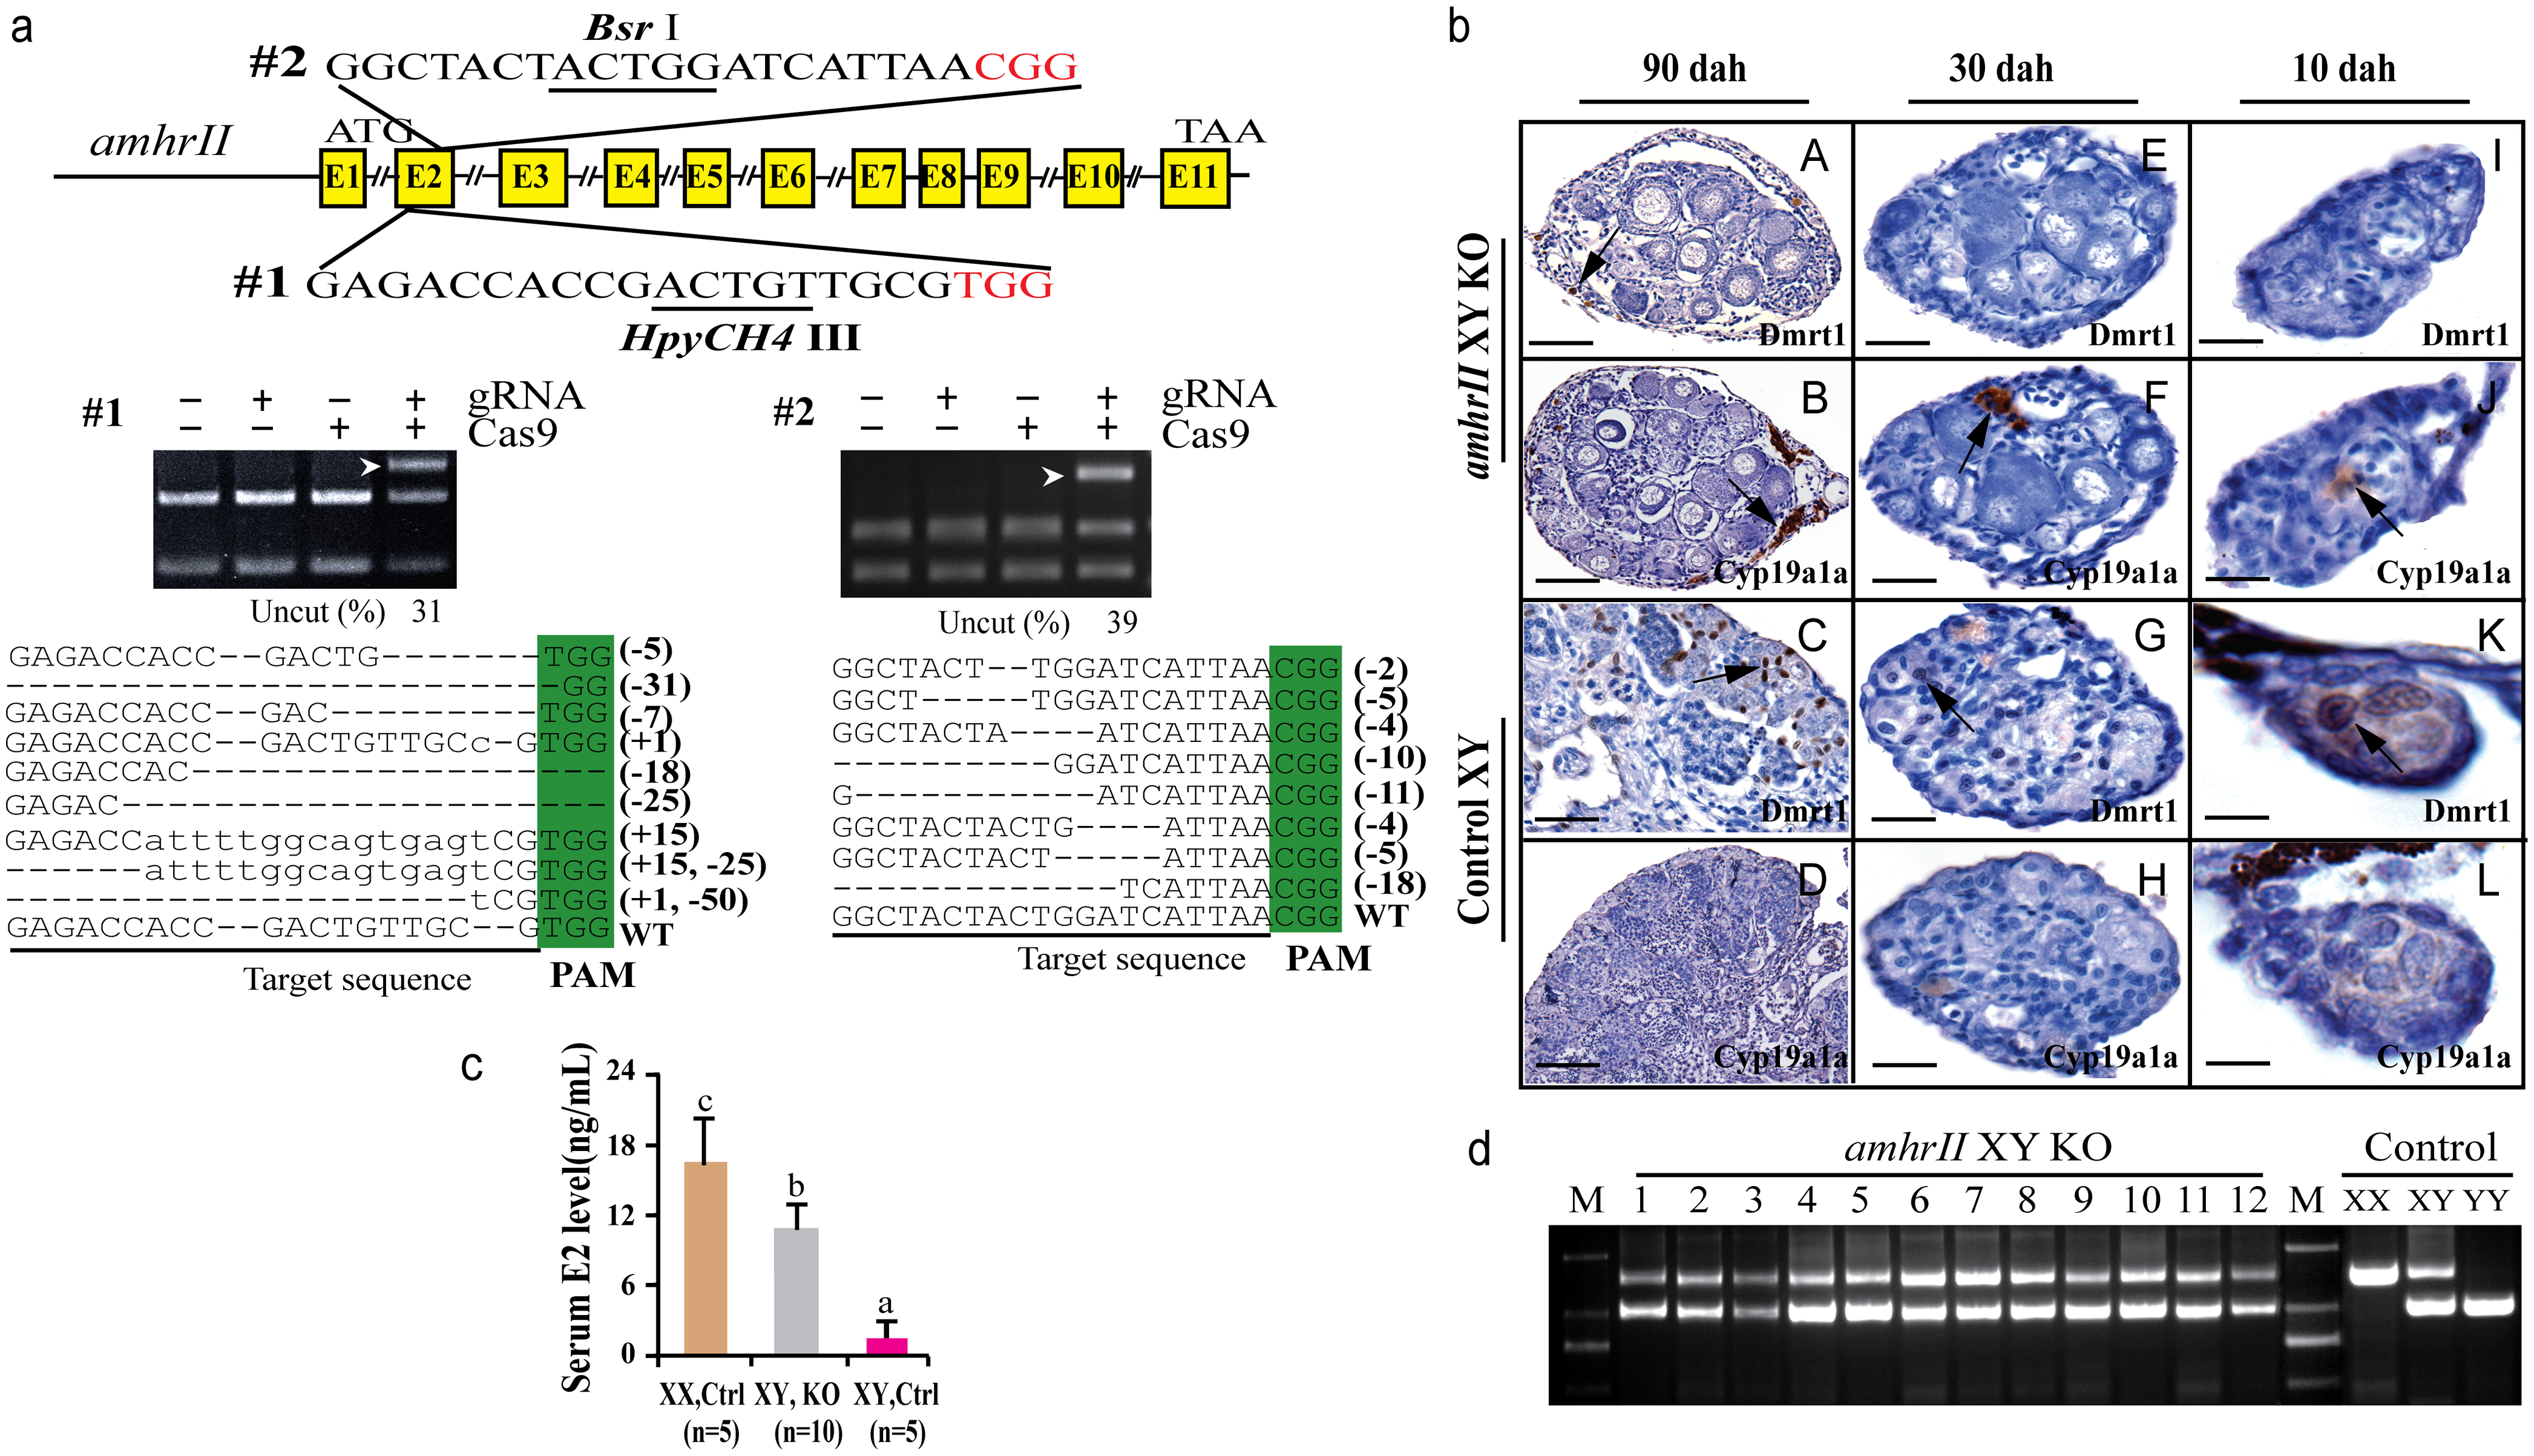 Knockout of <i>amhrII</i> by CRISPR/Cas9 resulted in male to female sex reversal in XY fish.